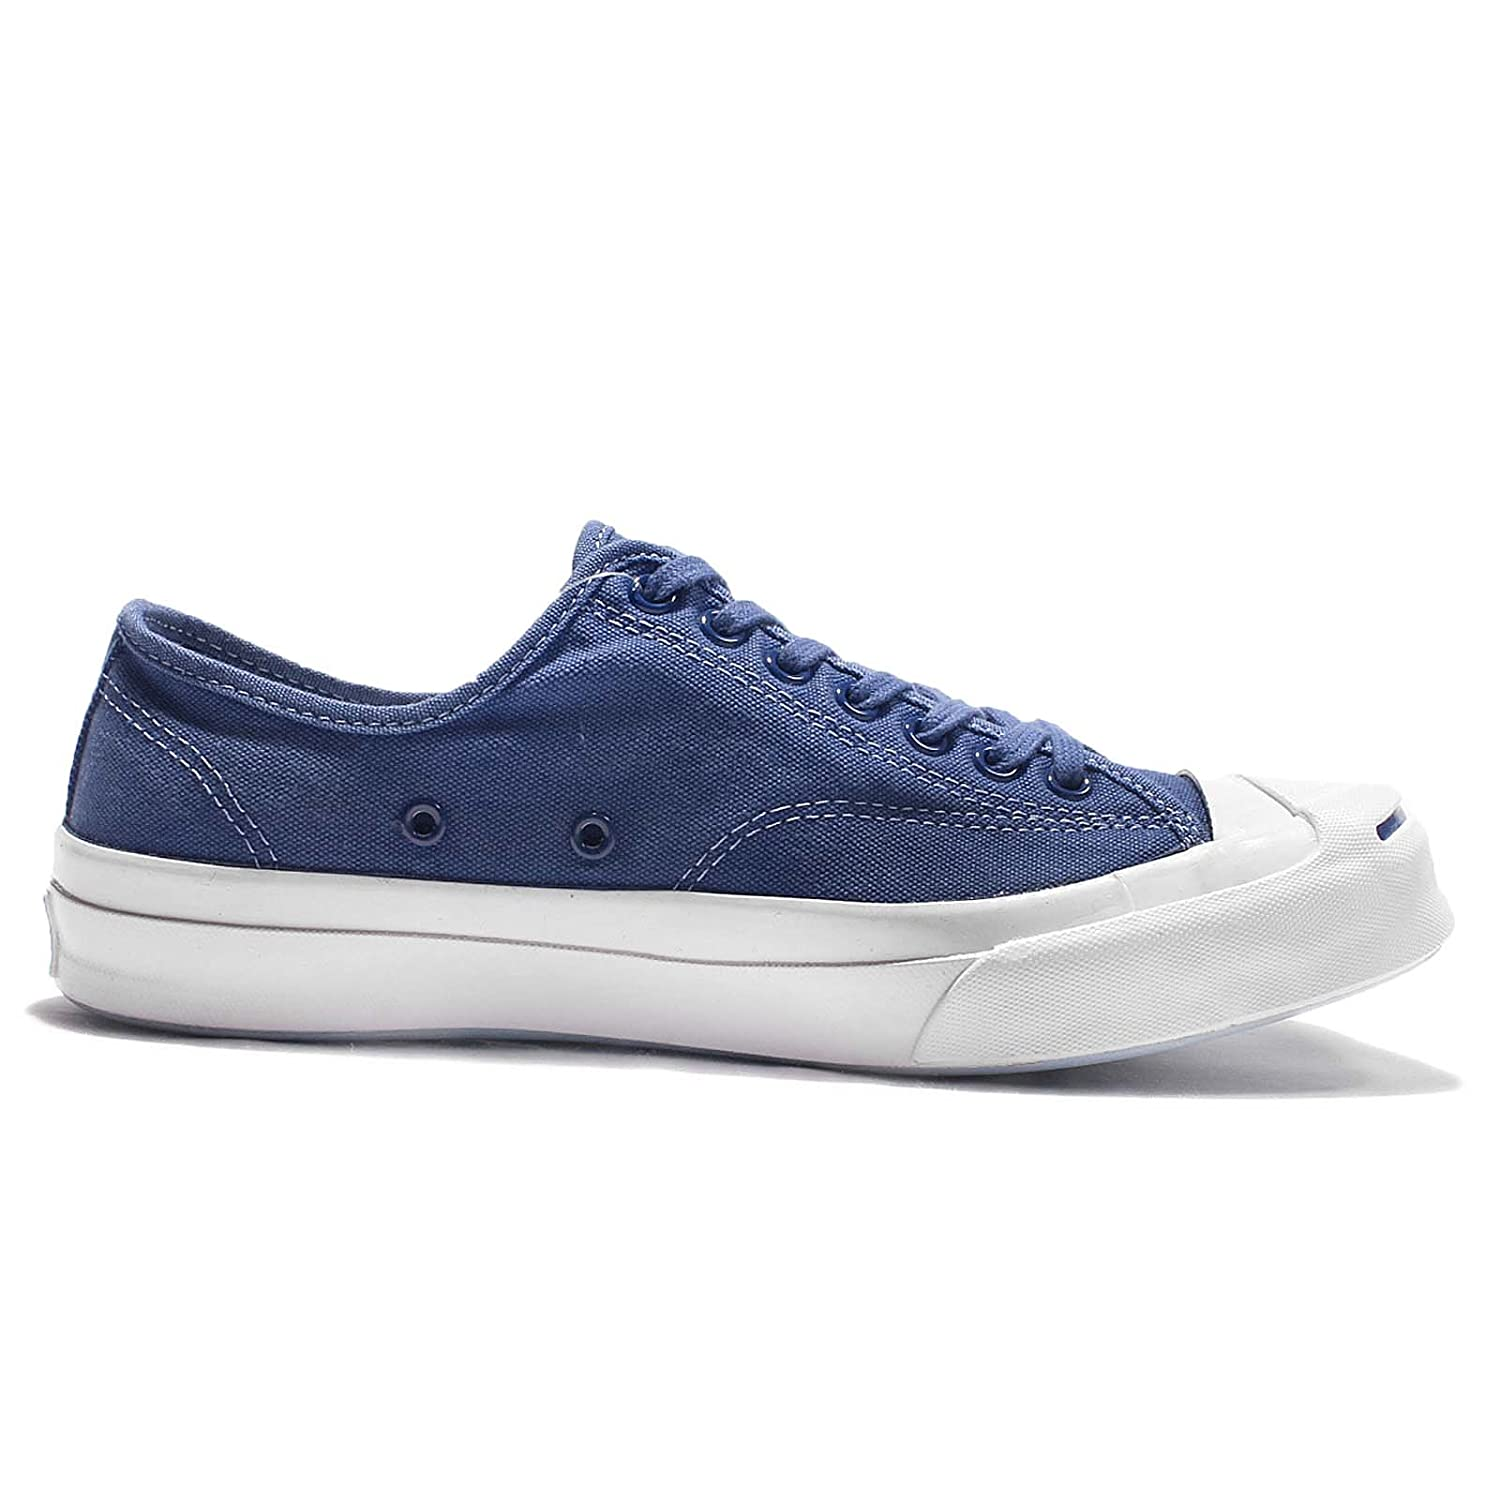 d7d379976d8d Converse Jack Purcell Signature OX Denim Blue Roadtrip Trainers-UK 8   Amazon.co.uk  Shoes   Bags